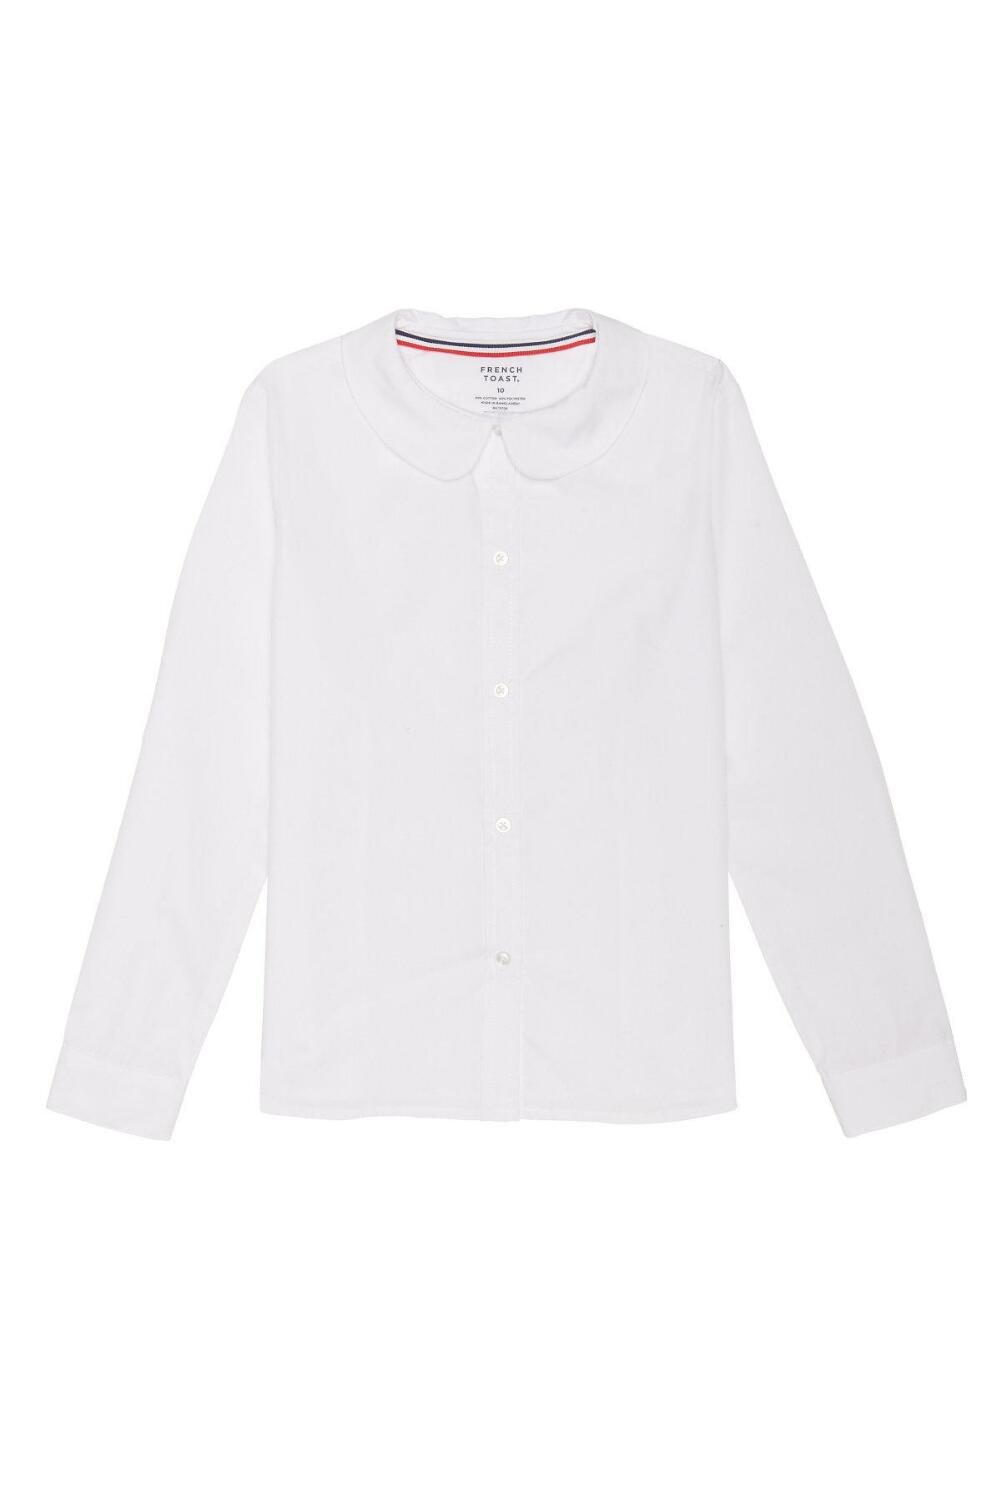 French Toast Girls' Big Long Sleeve Modern Peter Pan Collar Blouse, White, 8